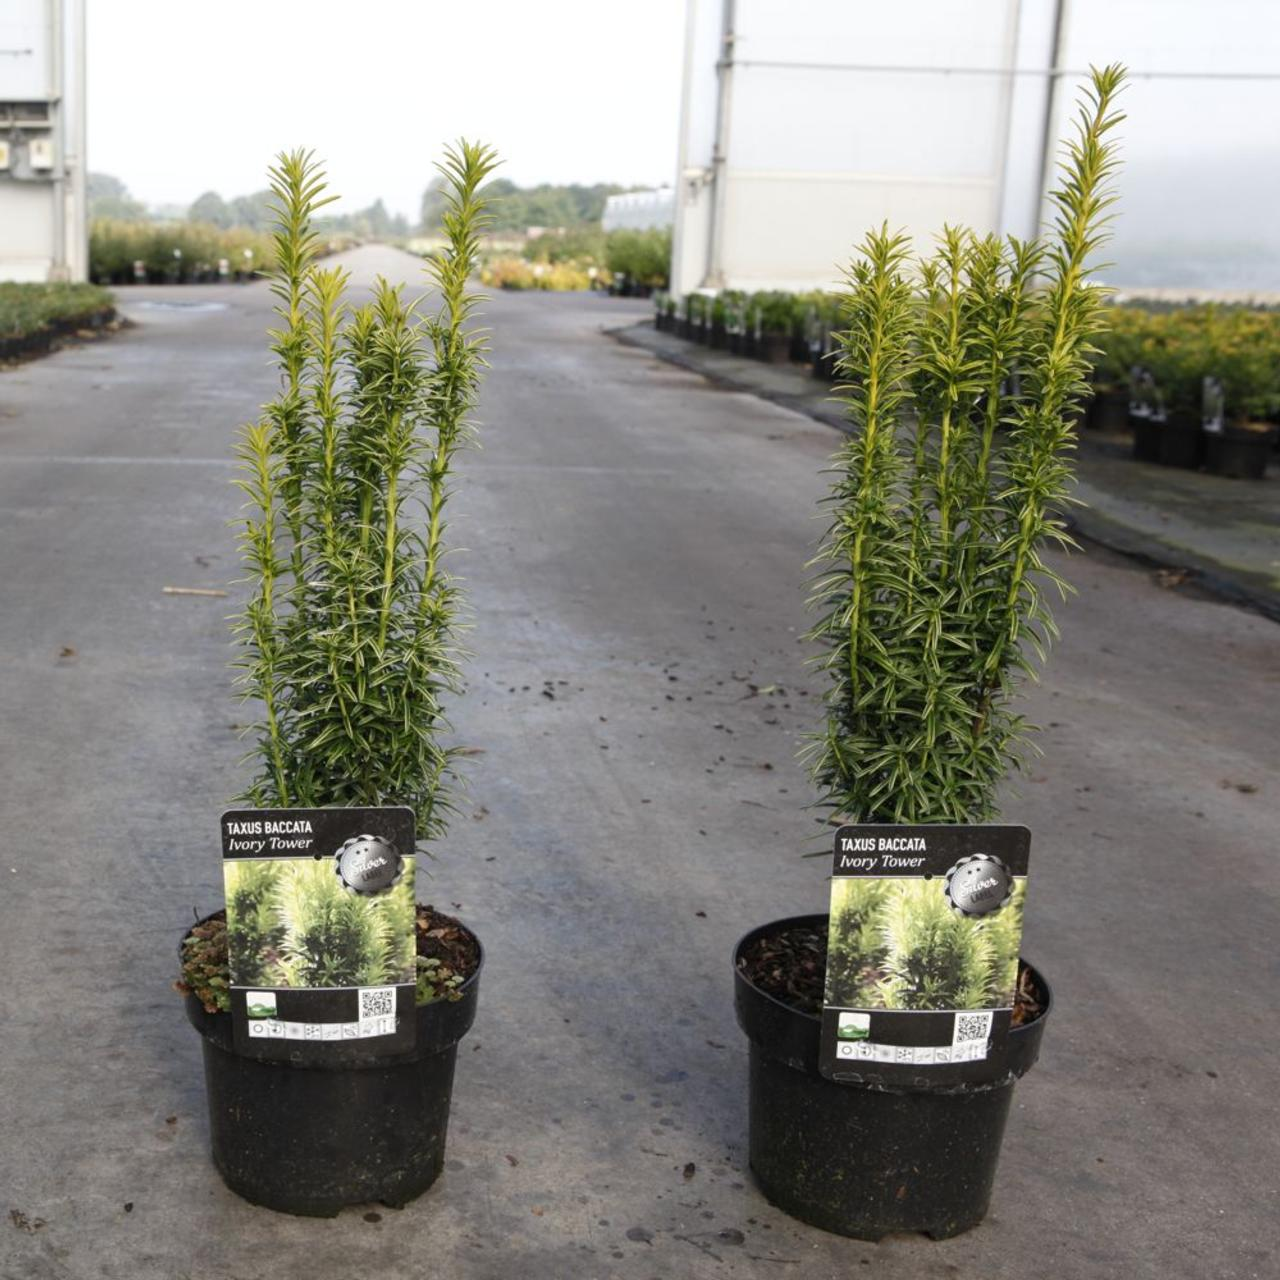 Taxus baccata 'Ivory Tower' plant